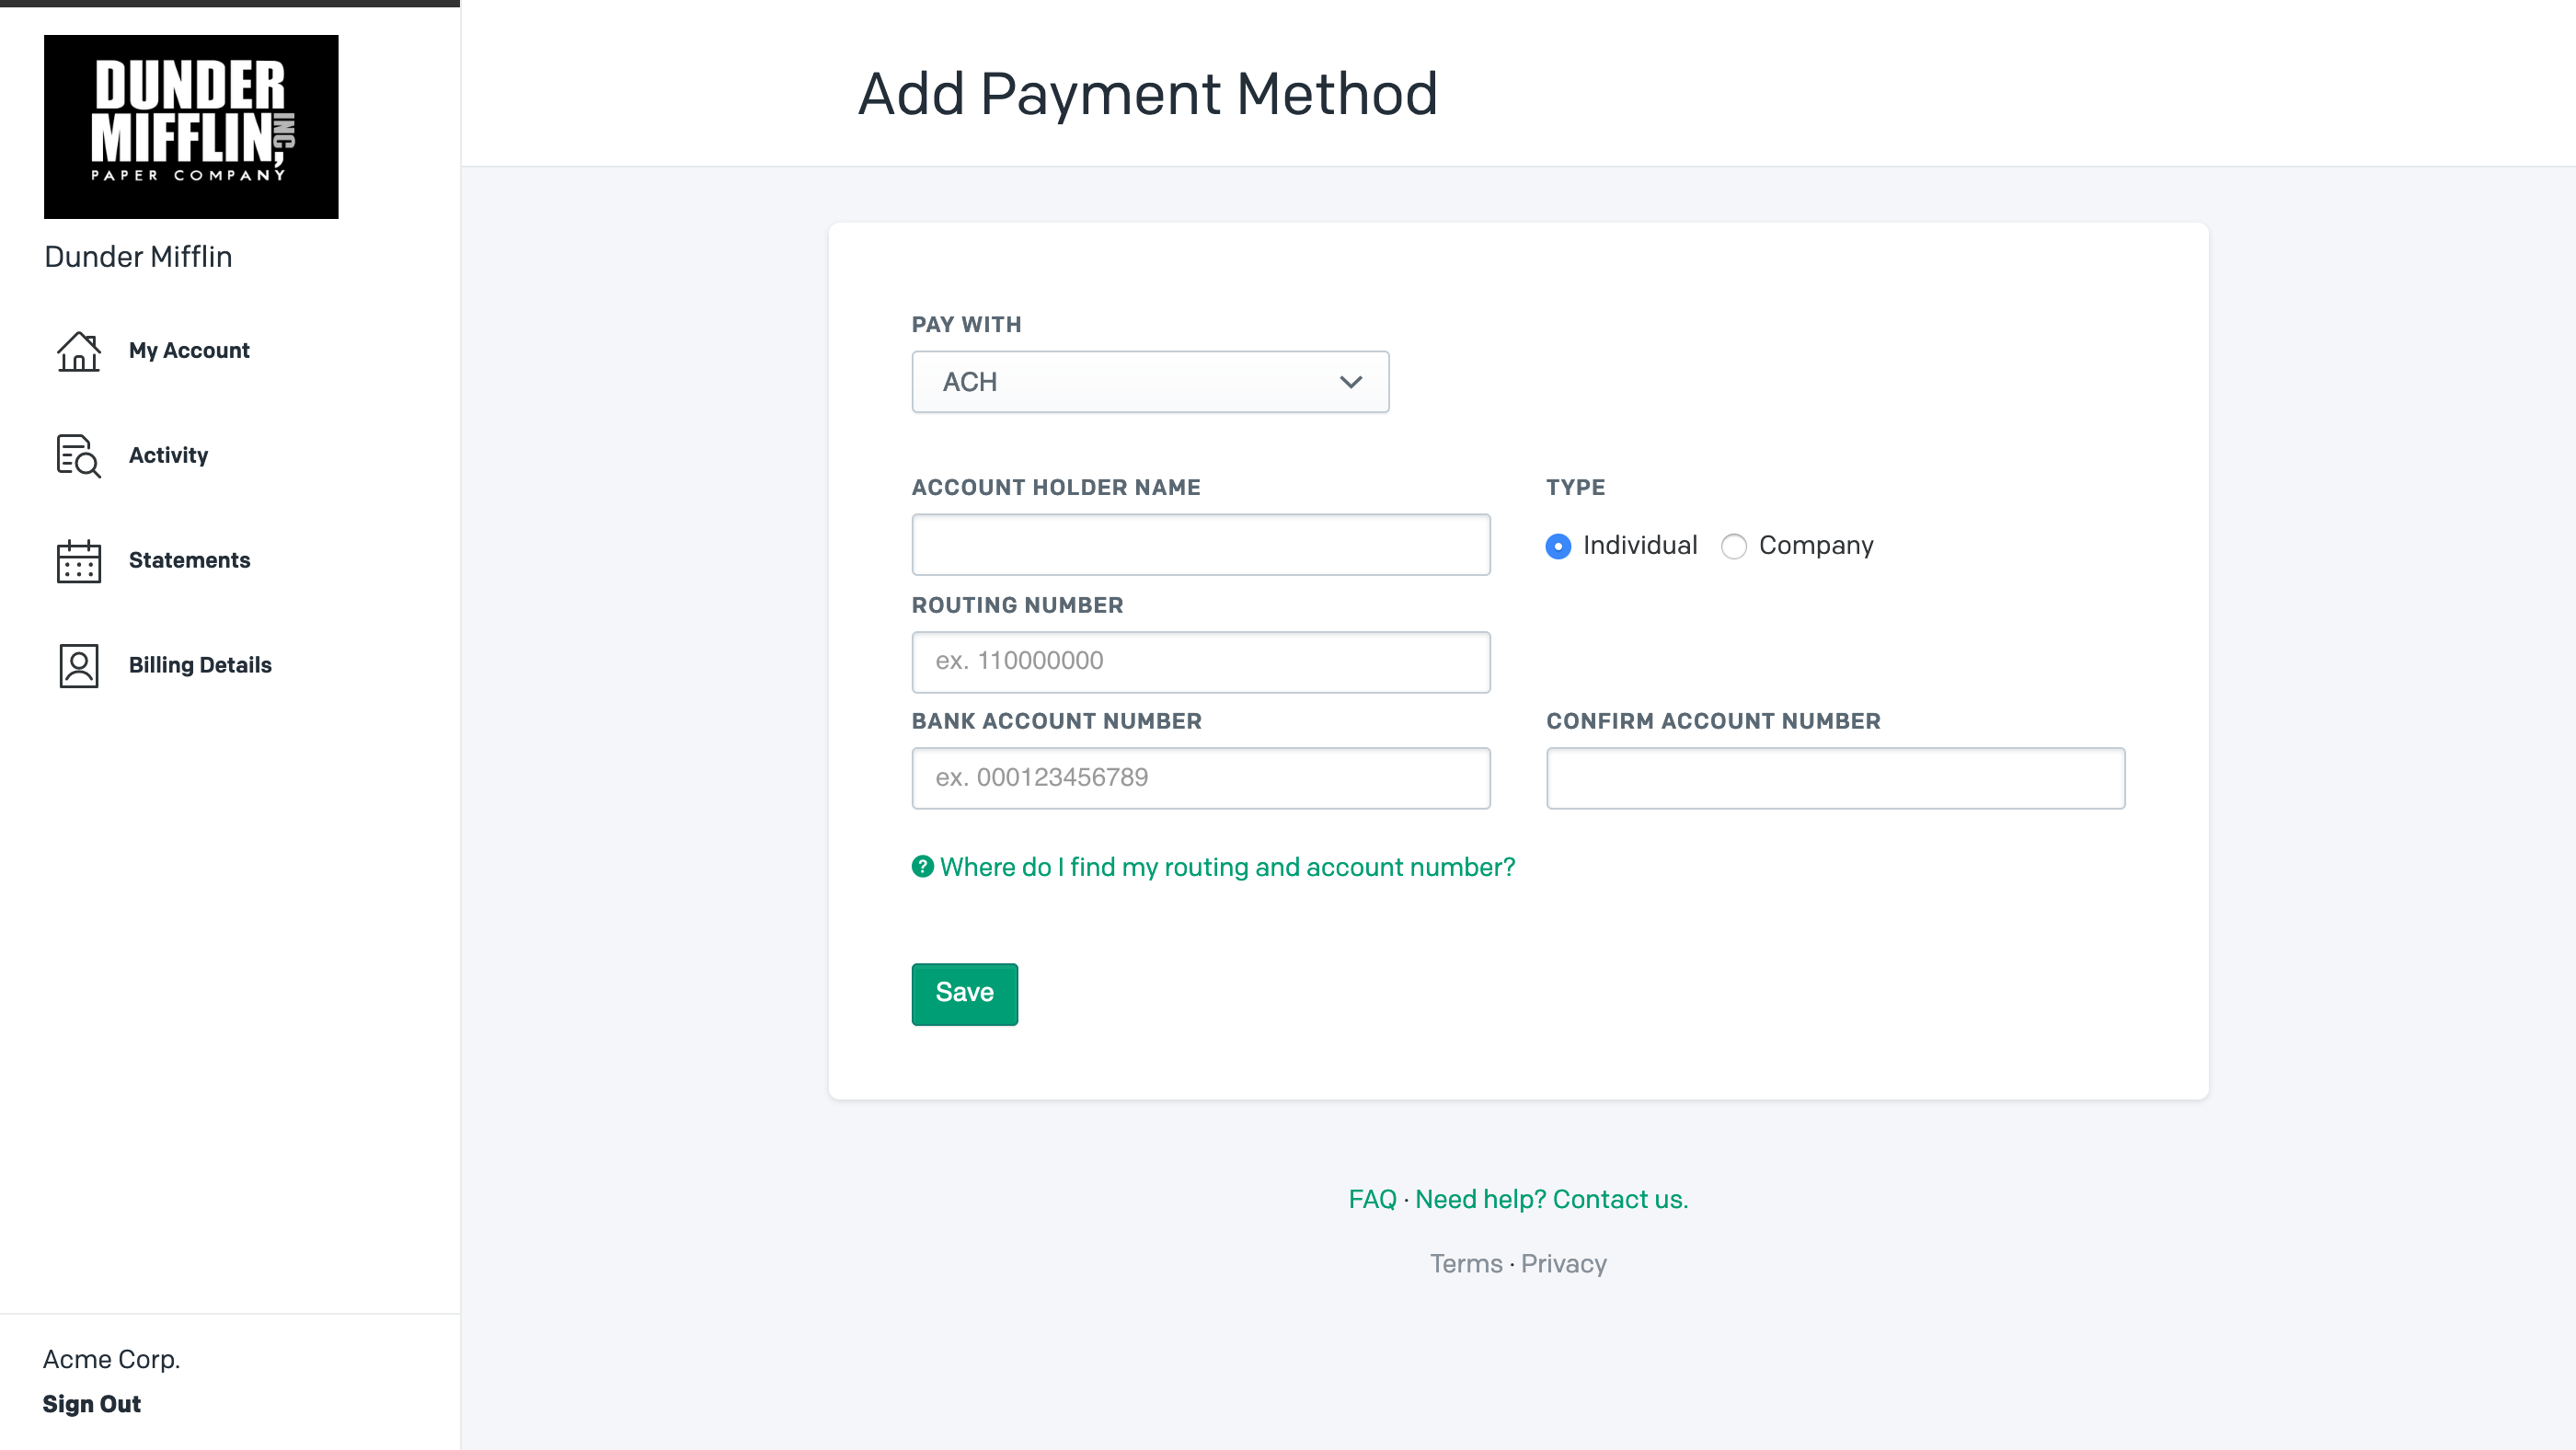 Updating payment information